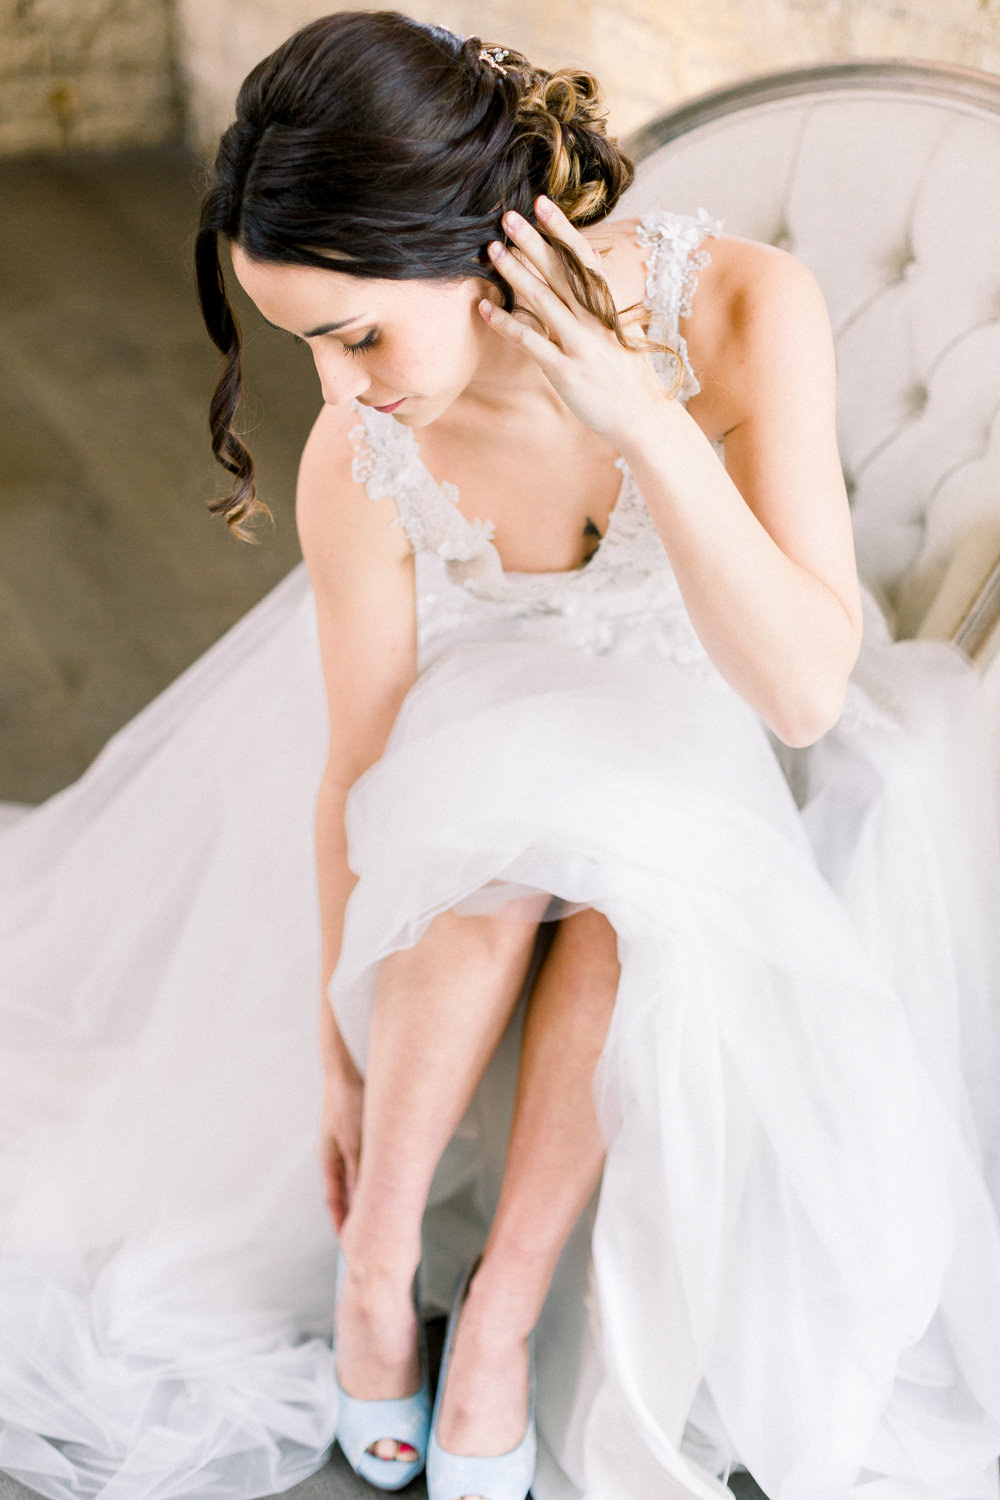 Shoes Bride Bridal Winter Blue Barn Wedding Ideas Joanna Briggs Photography